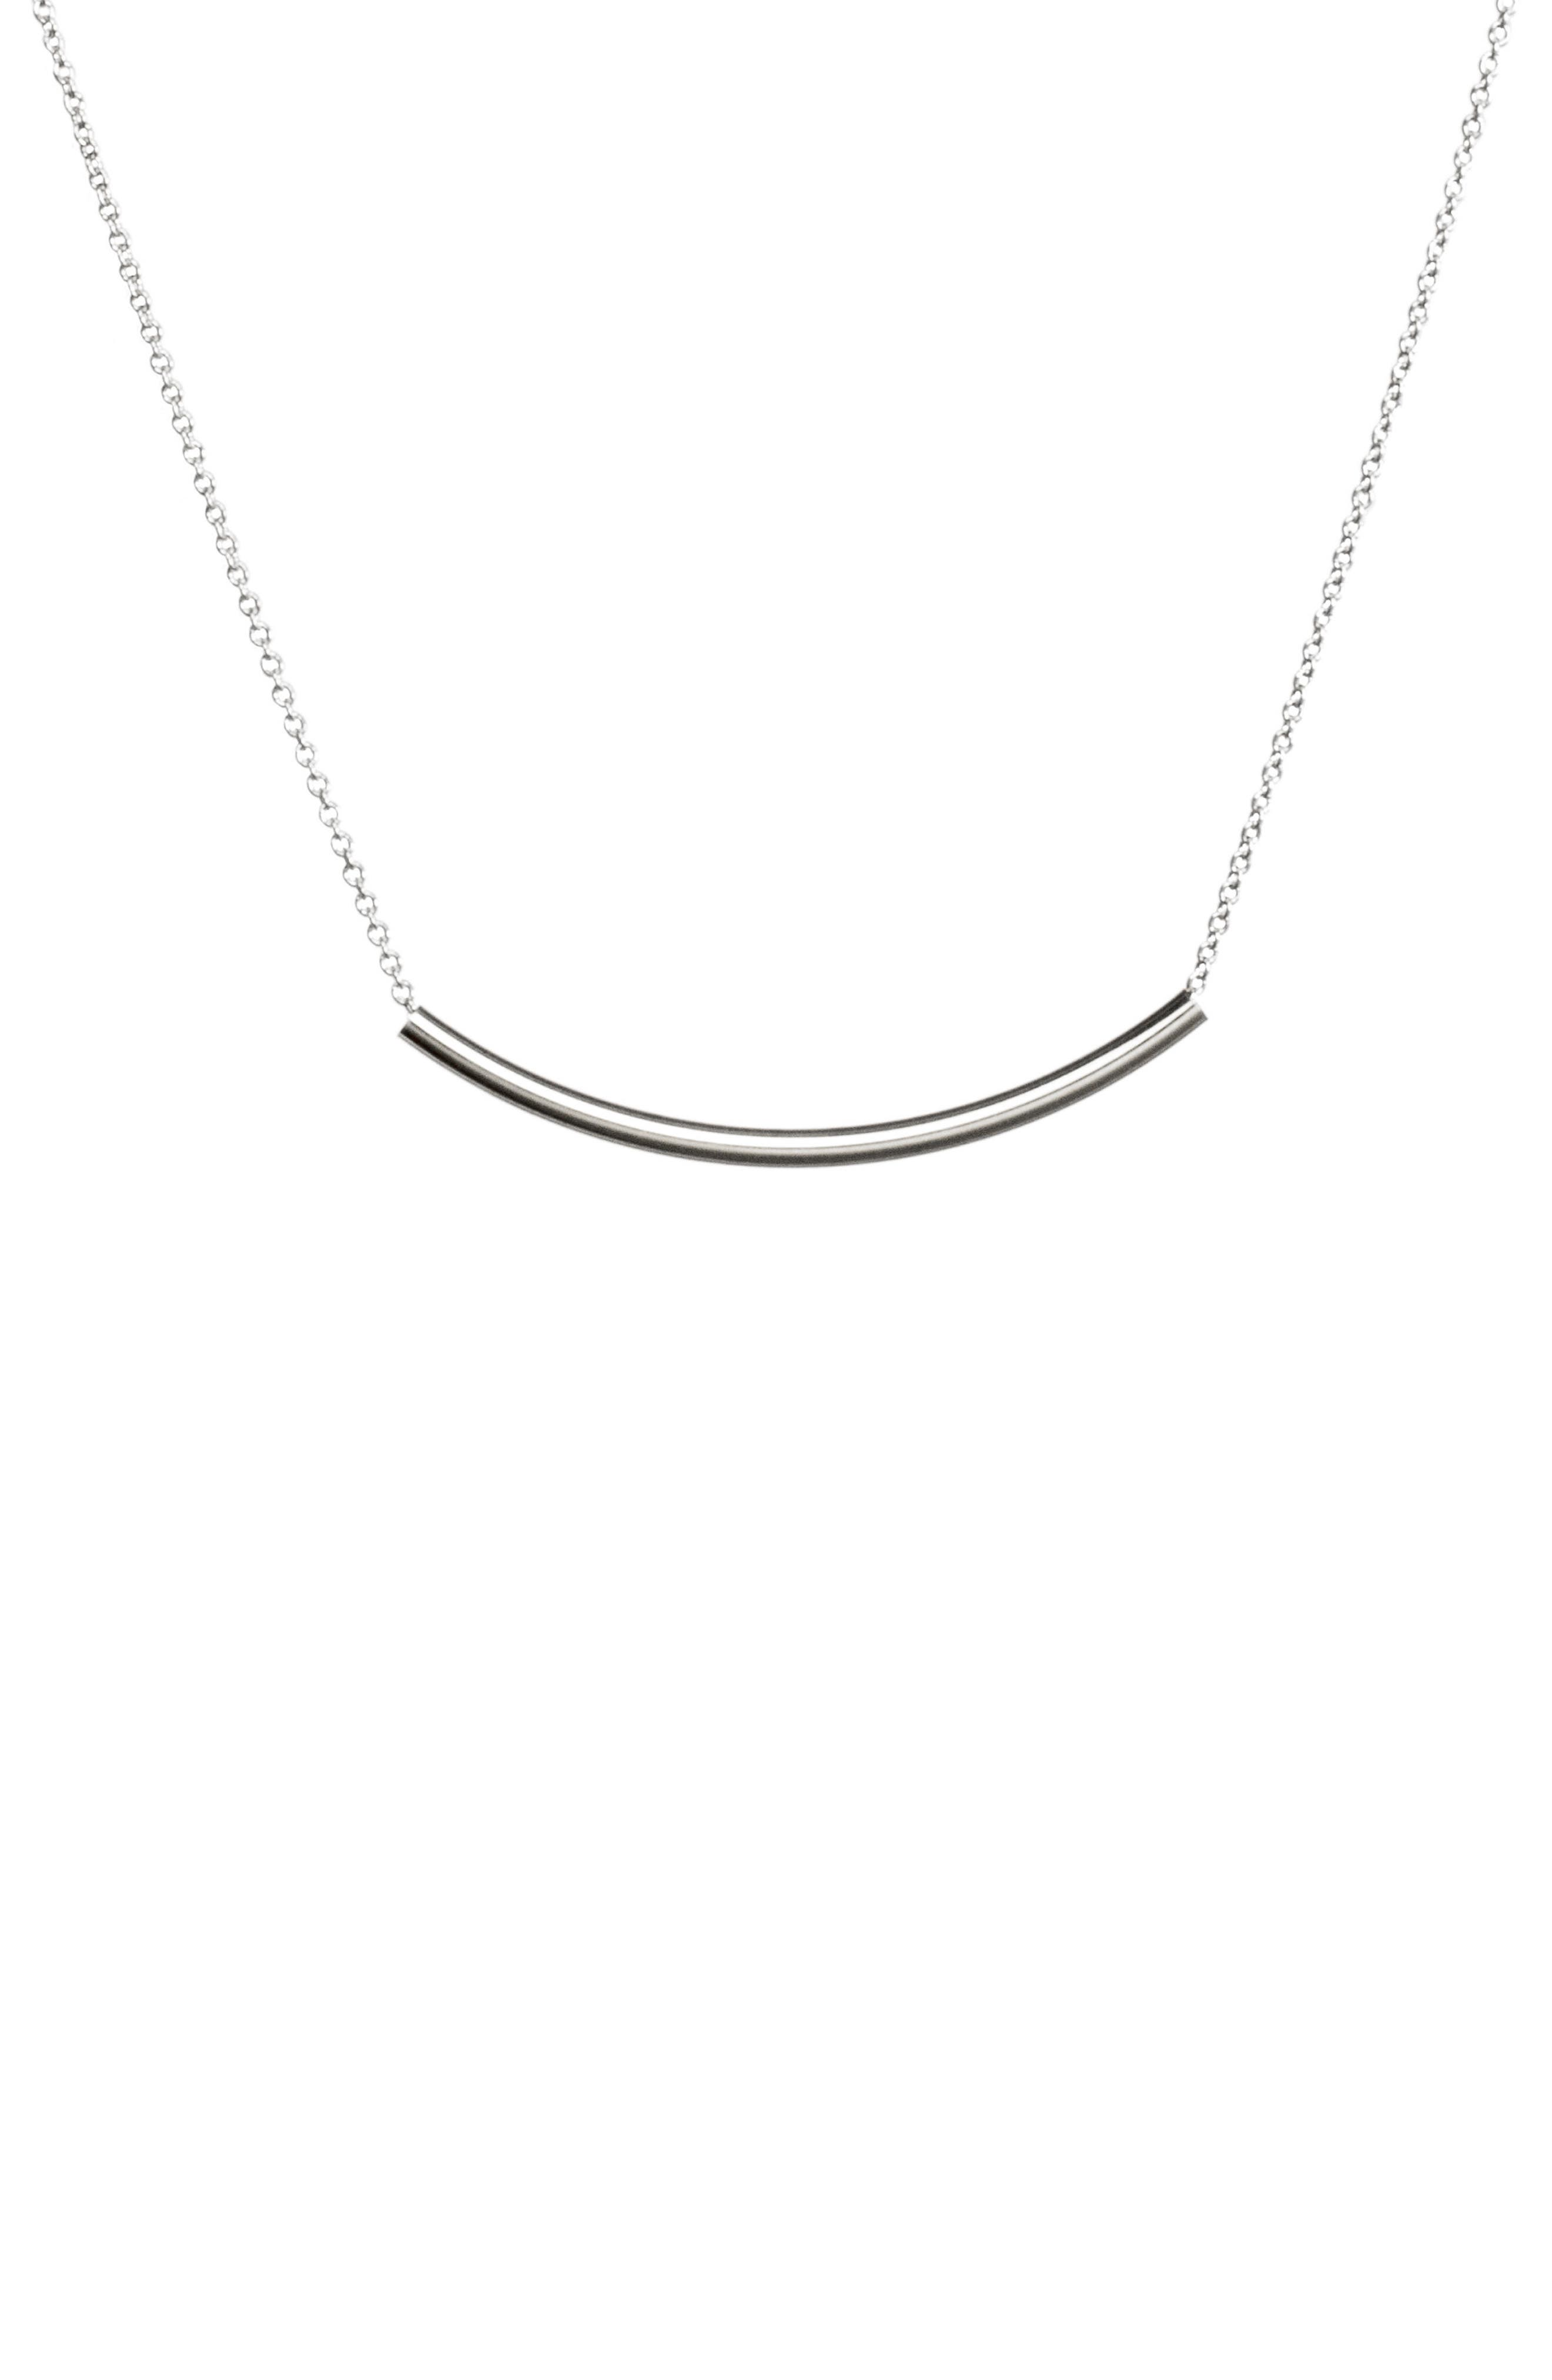 Balance Tube Chain Necklace,                             Alternate thumbnail 4, color,                             042